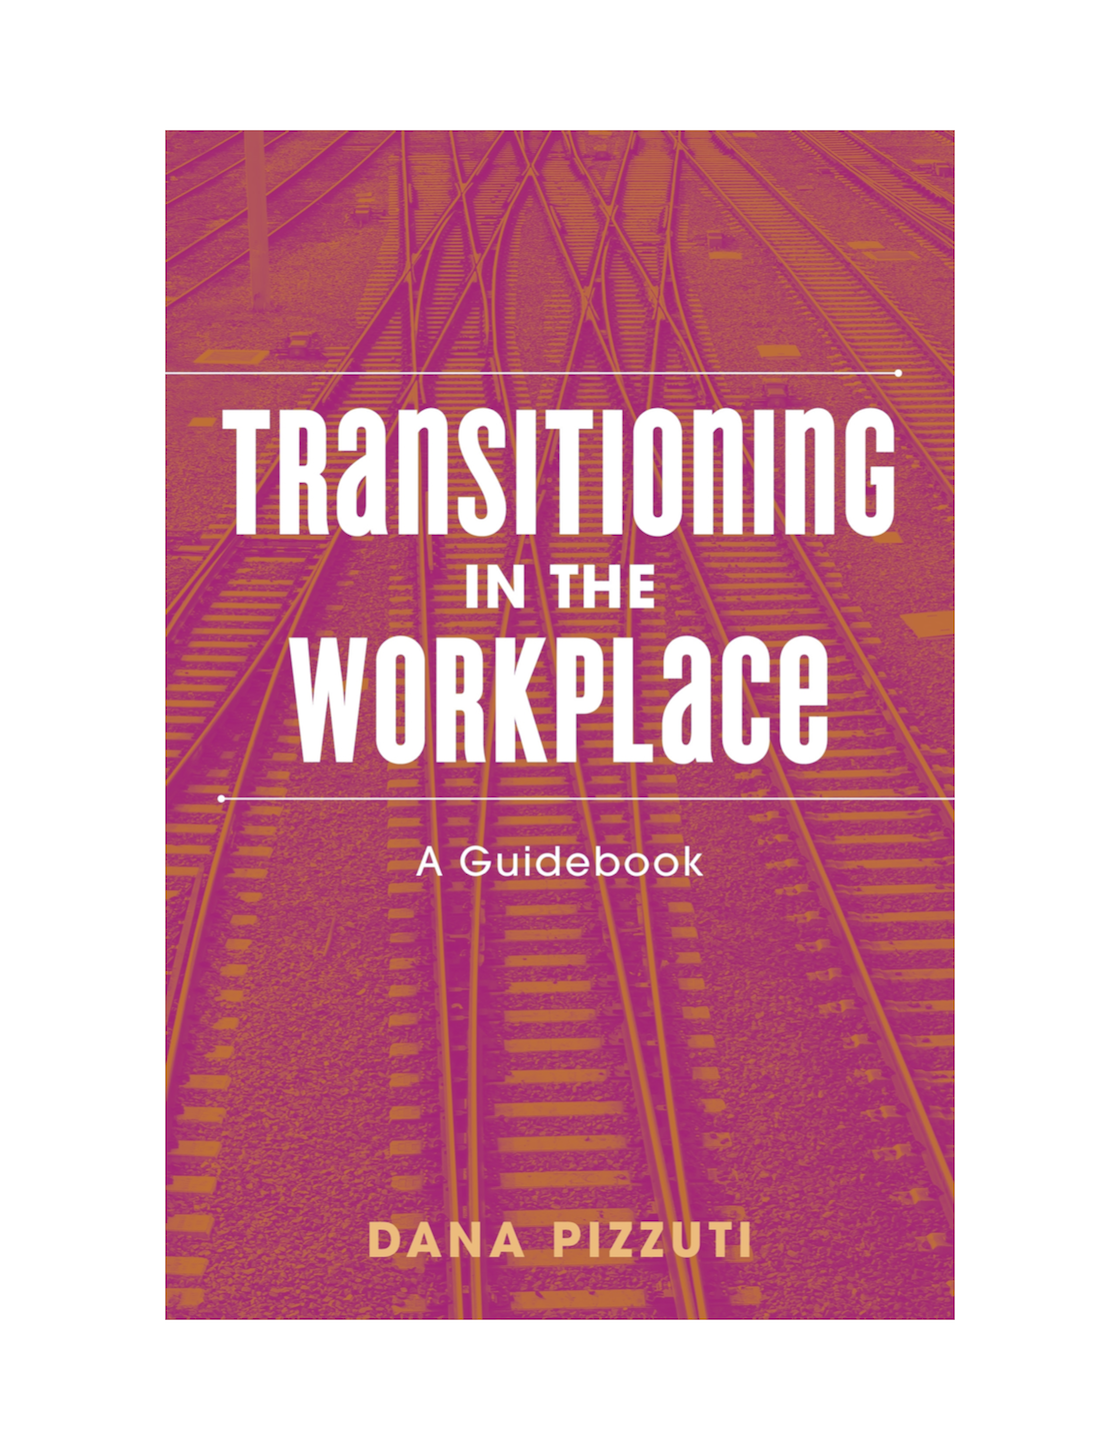 Written from the author's own experience of transitioning within a major US corporation, this book prepares transgender people with everything they need to know to successfully transition in the workplace. The first guide of its kind, it offers all the practical advice and support trans people need to be able to balance their career ambitions with their personal needs.